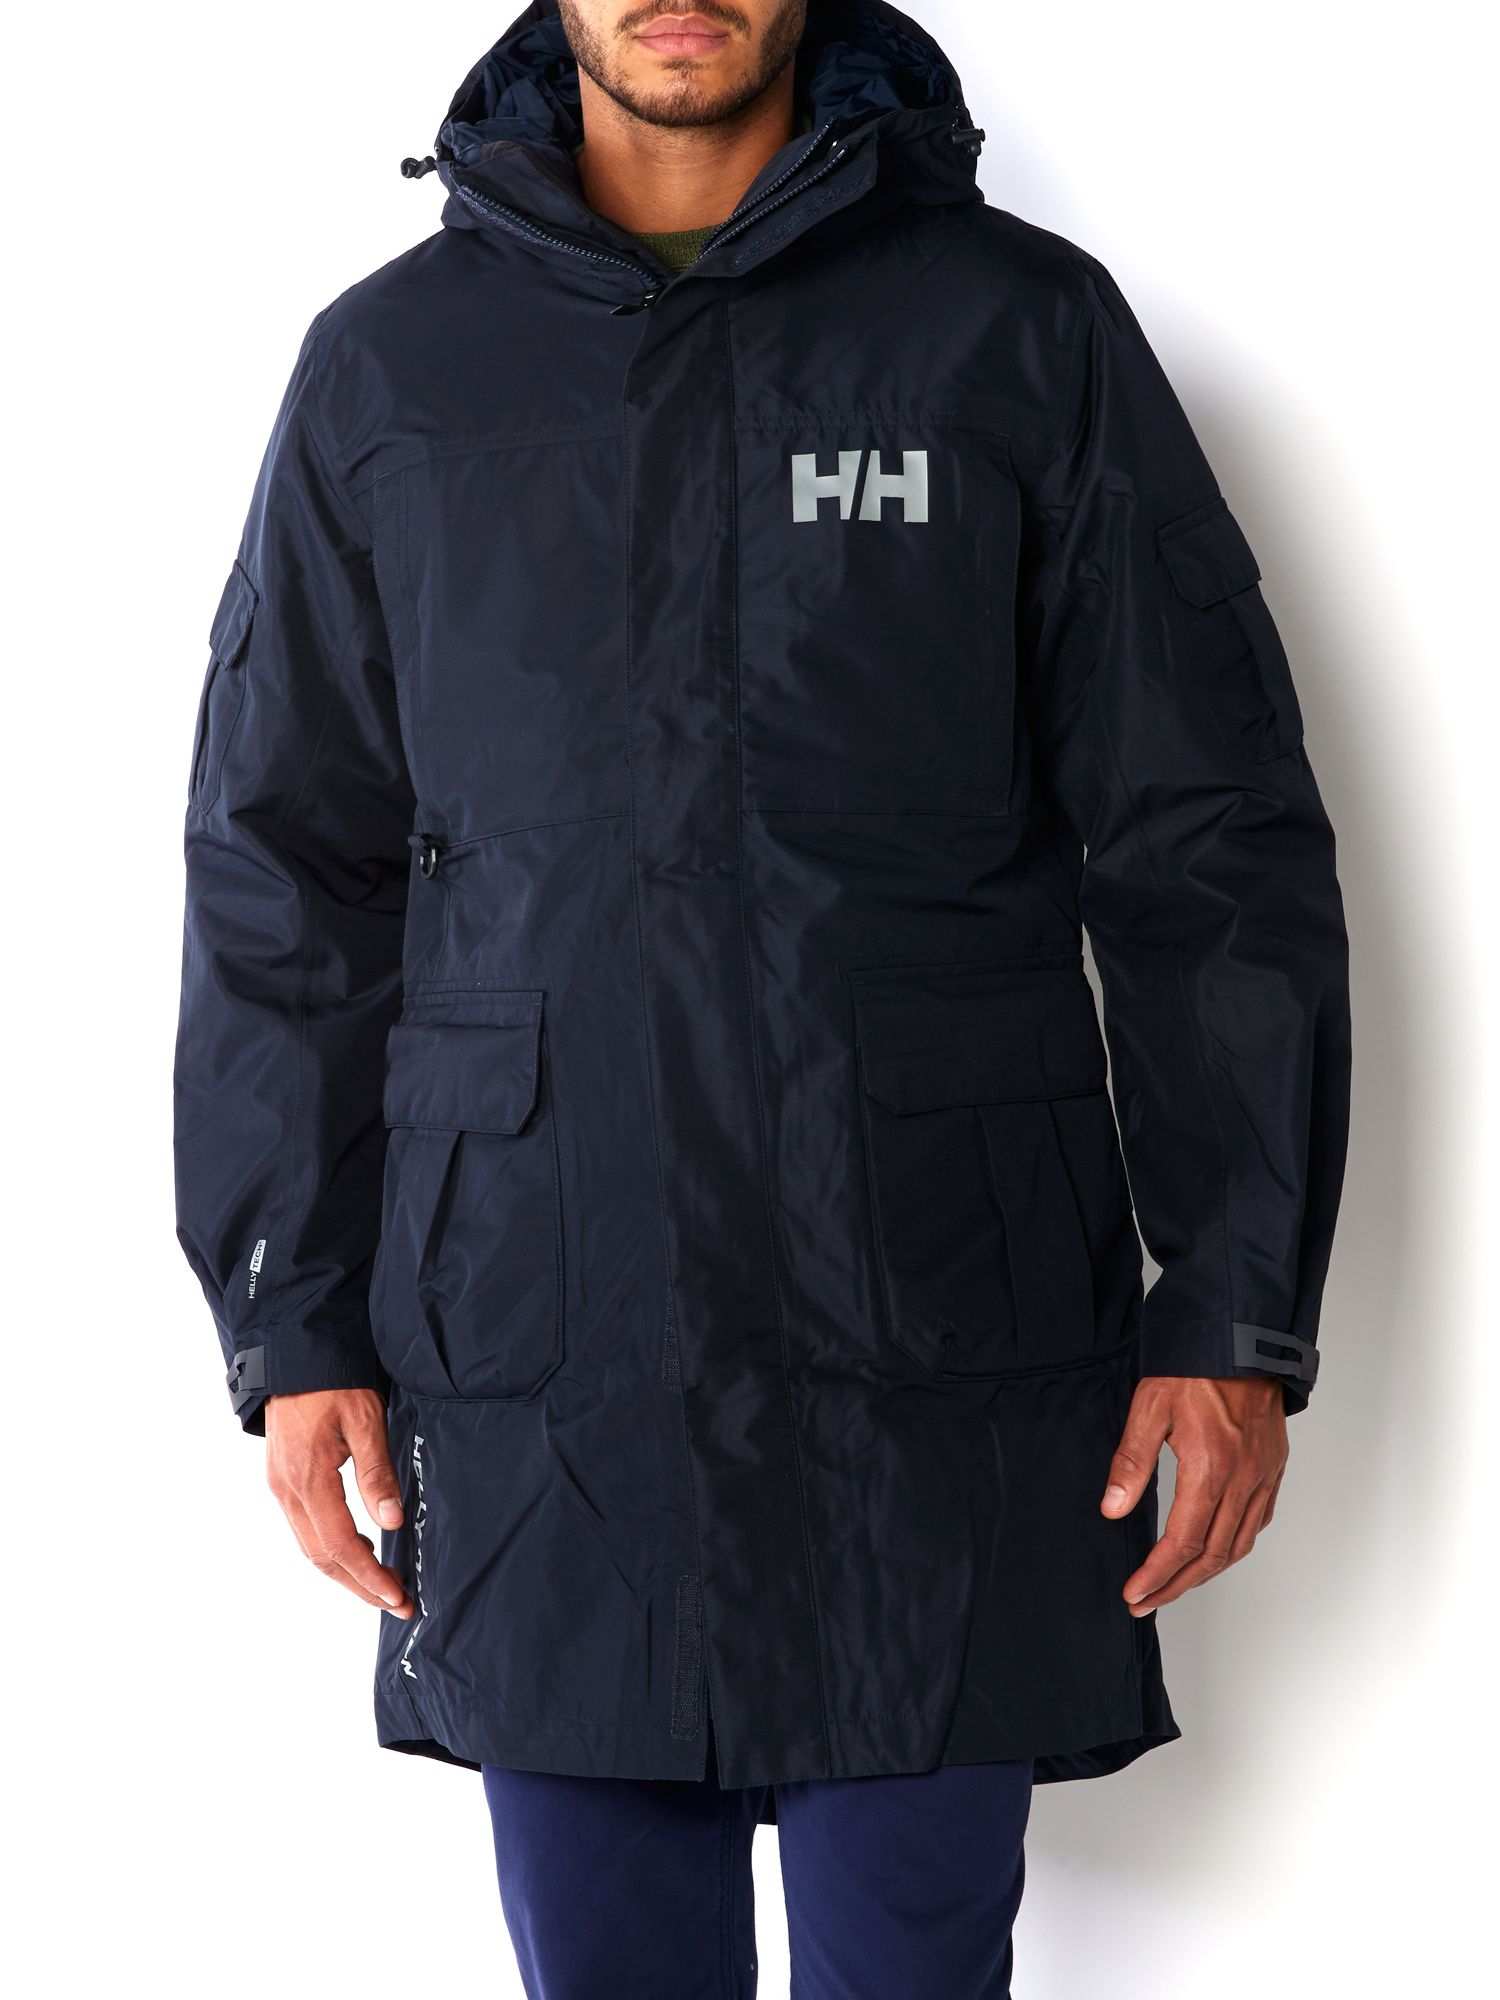 Hydropower rigging coat